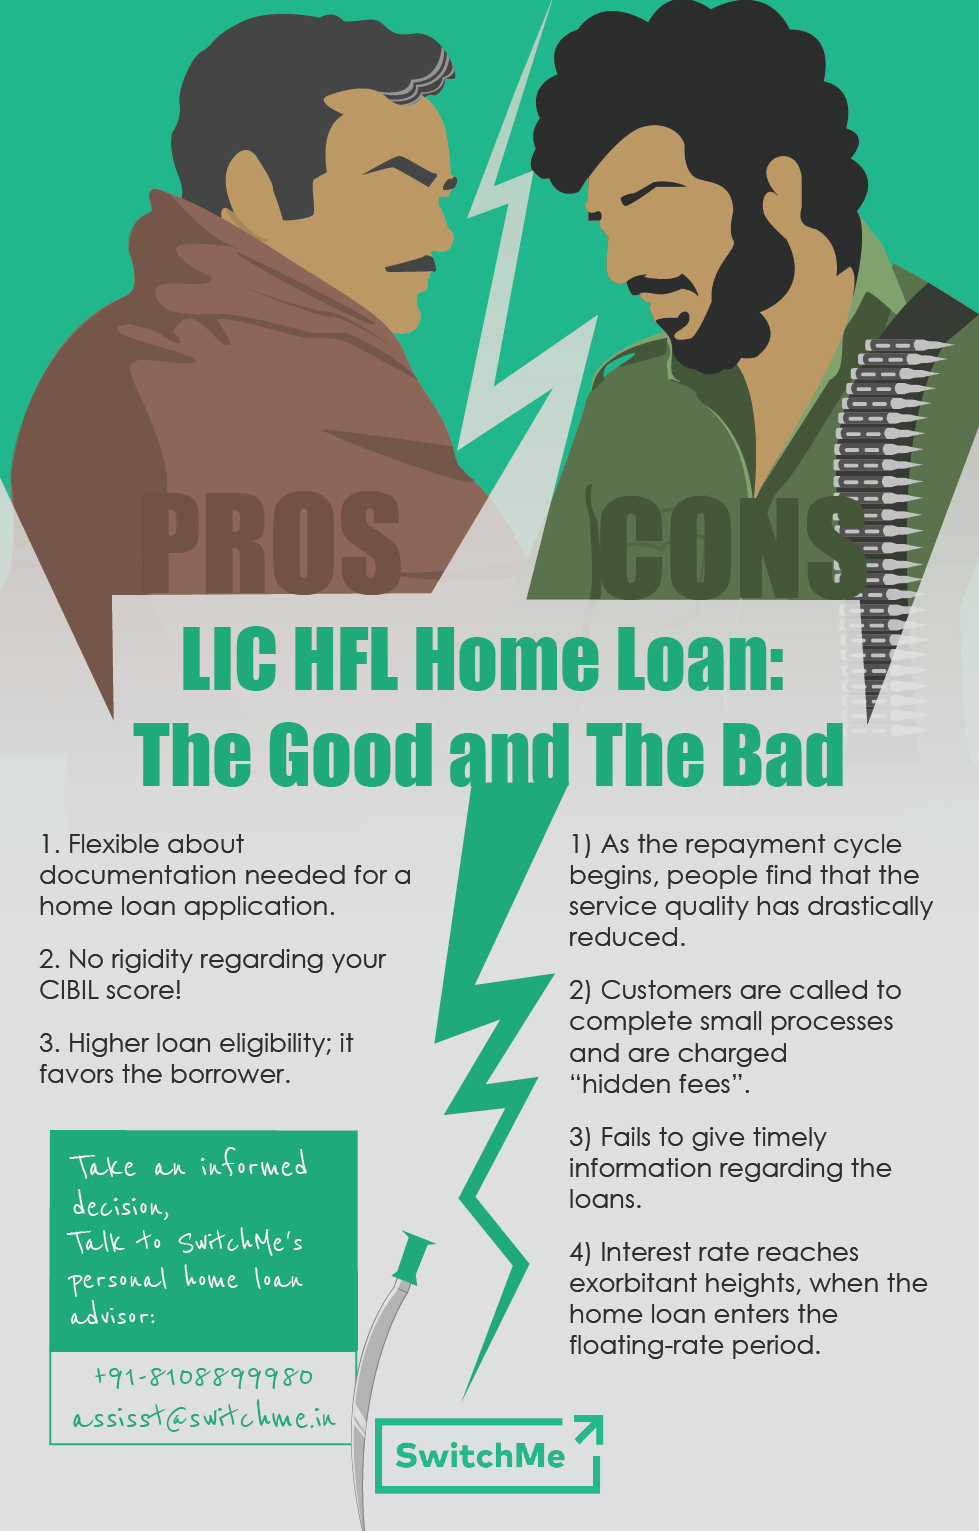 Lichfl housing loan the good & the bad [infographic] home.